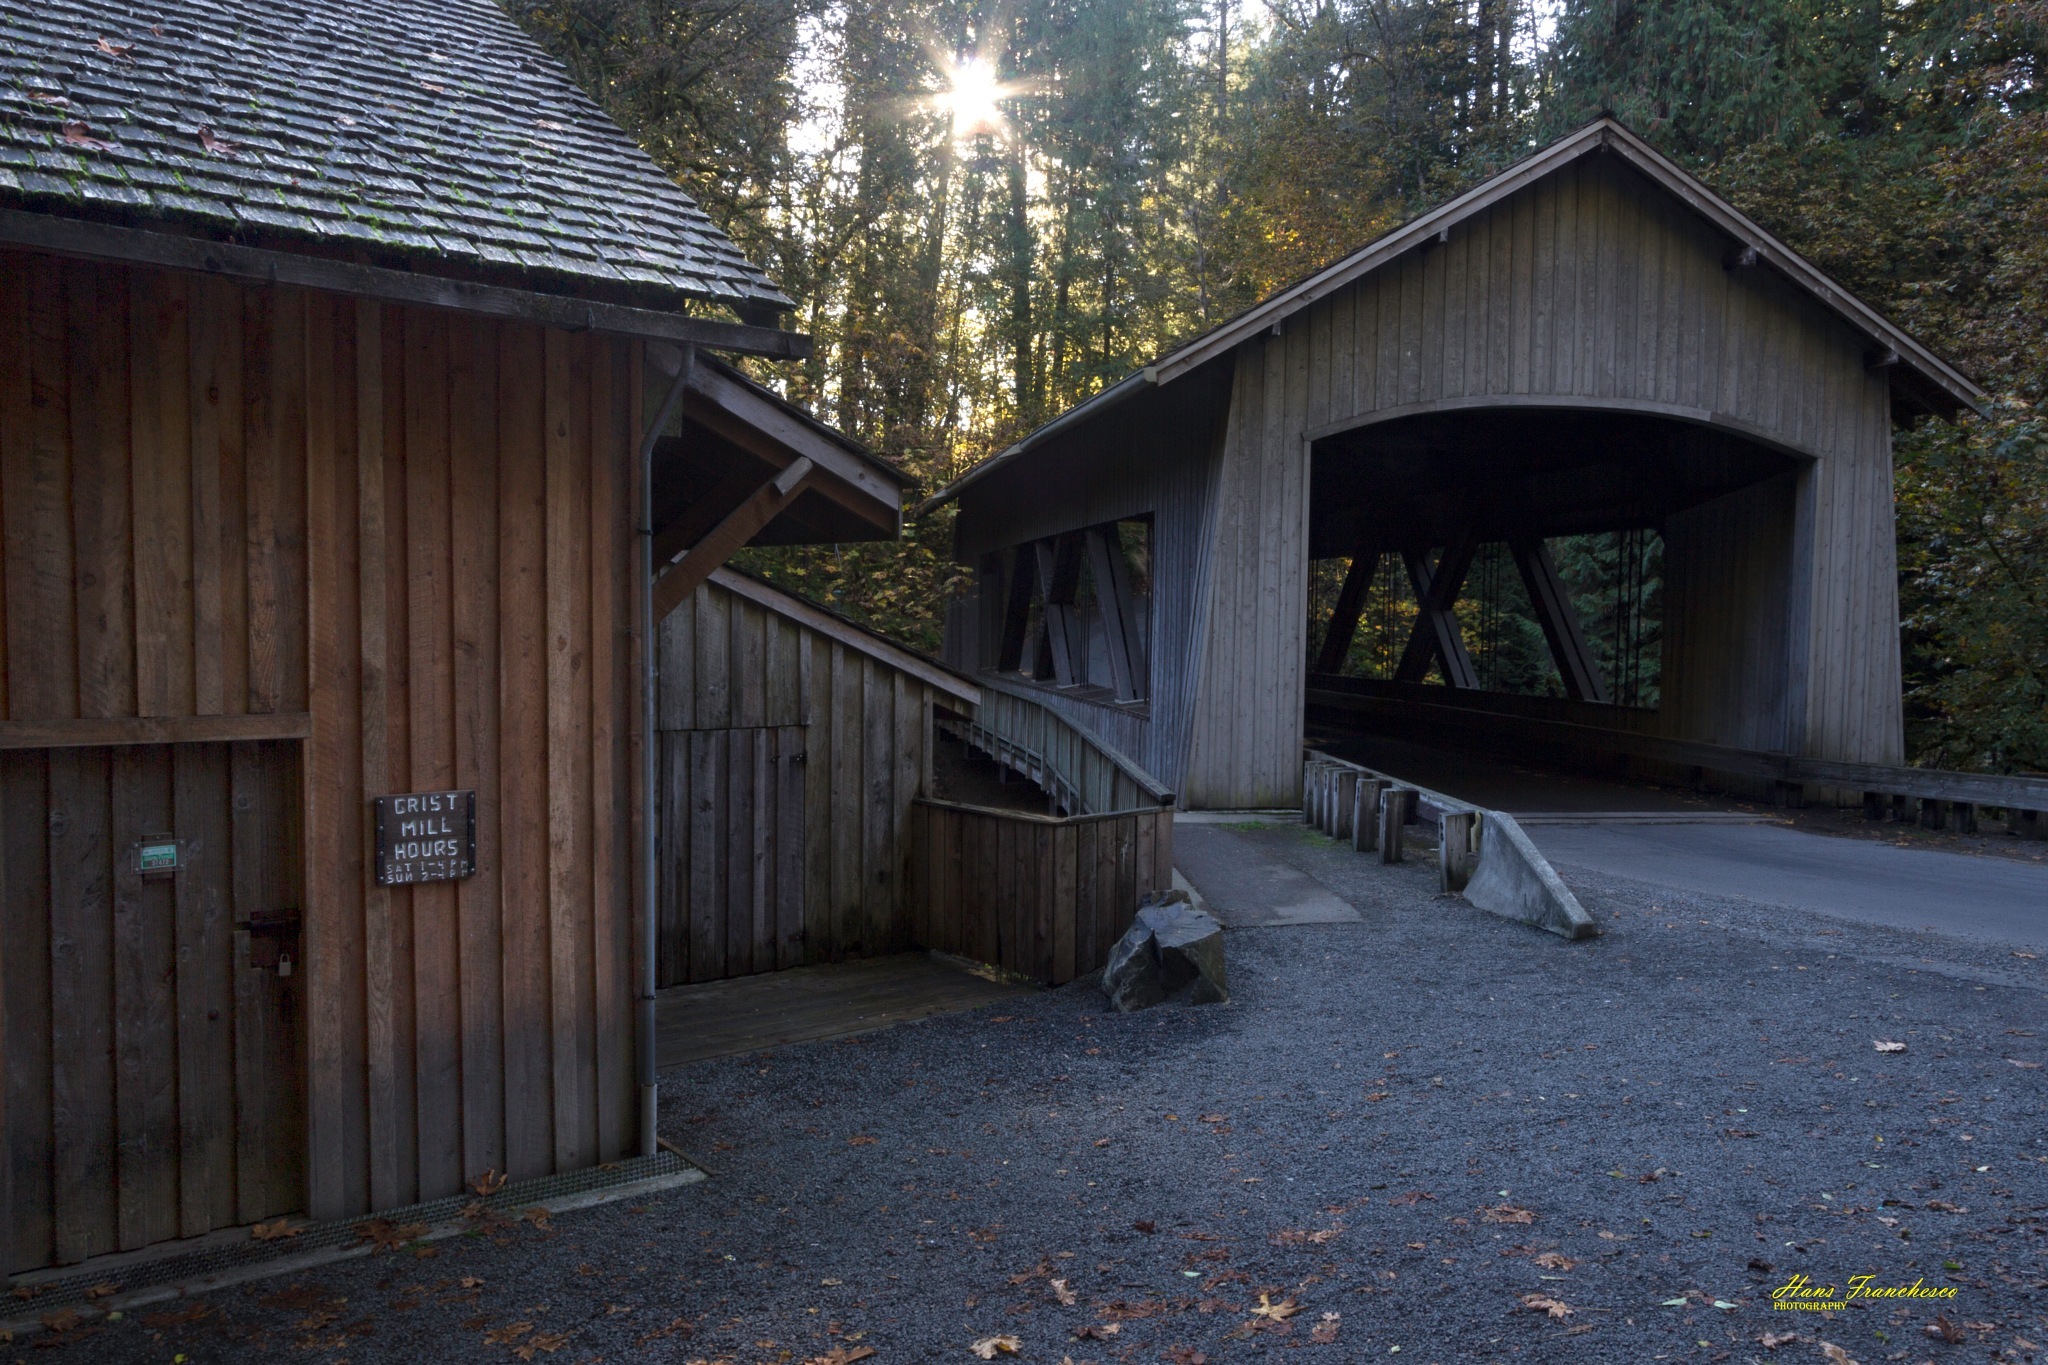 The covered bridge at Cedar creeks Grist Mill by Hans Franchesco